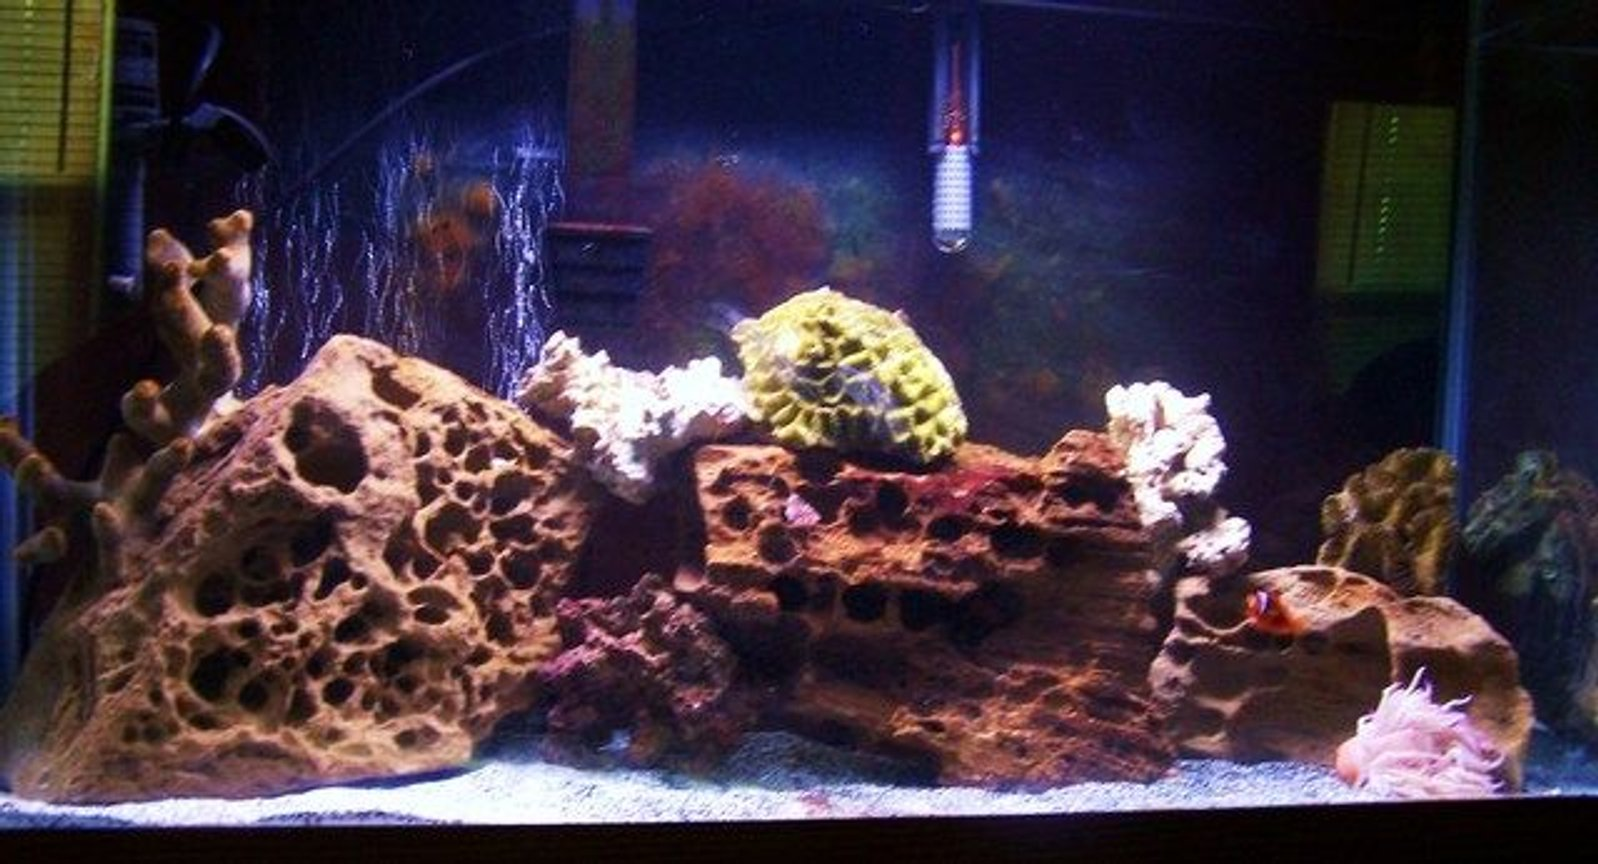 55 gallons saltwater fish tank (mostly fish, little/no live coral) - my 2 month tank (55 gallon) slowly building up!!